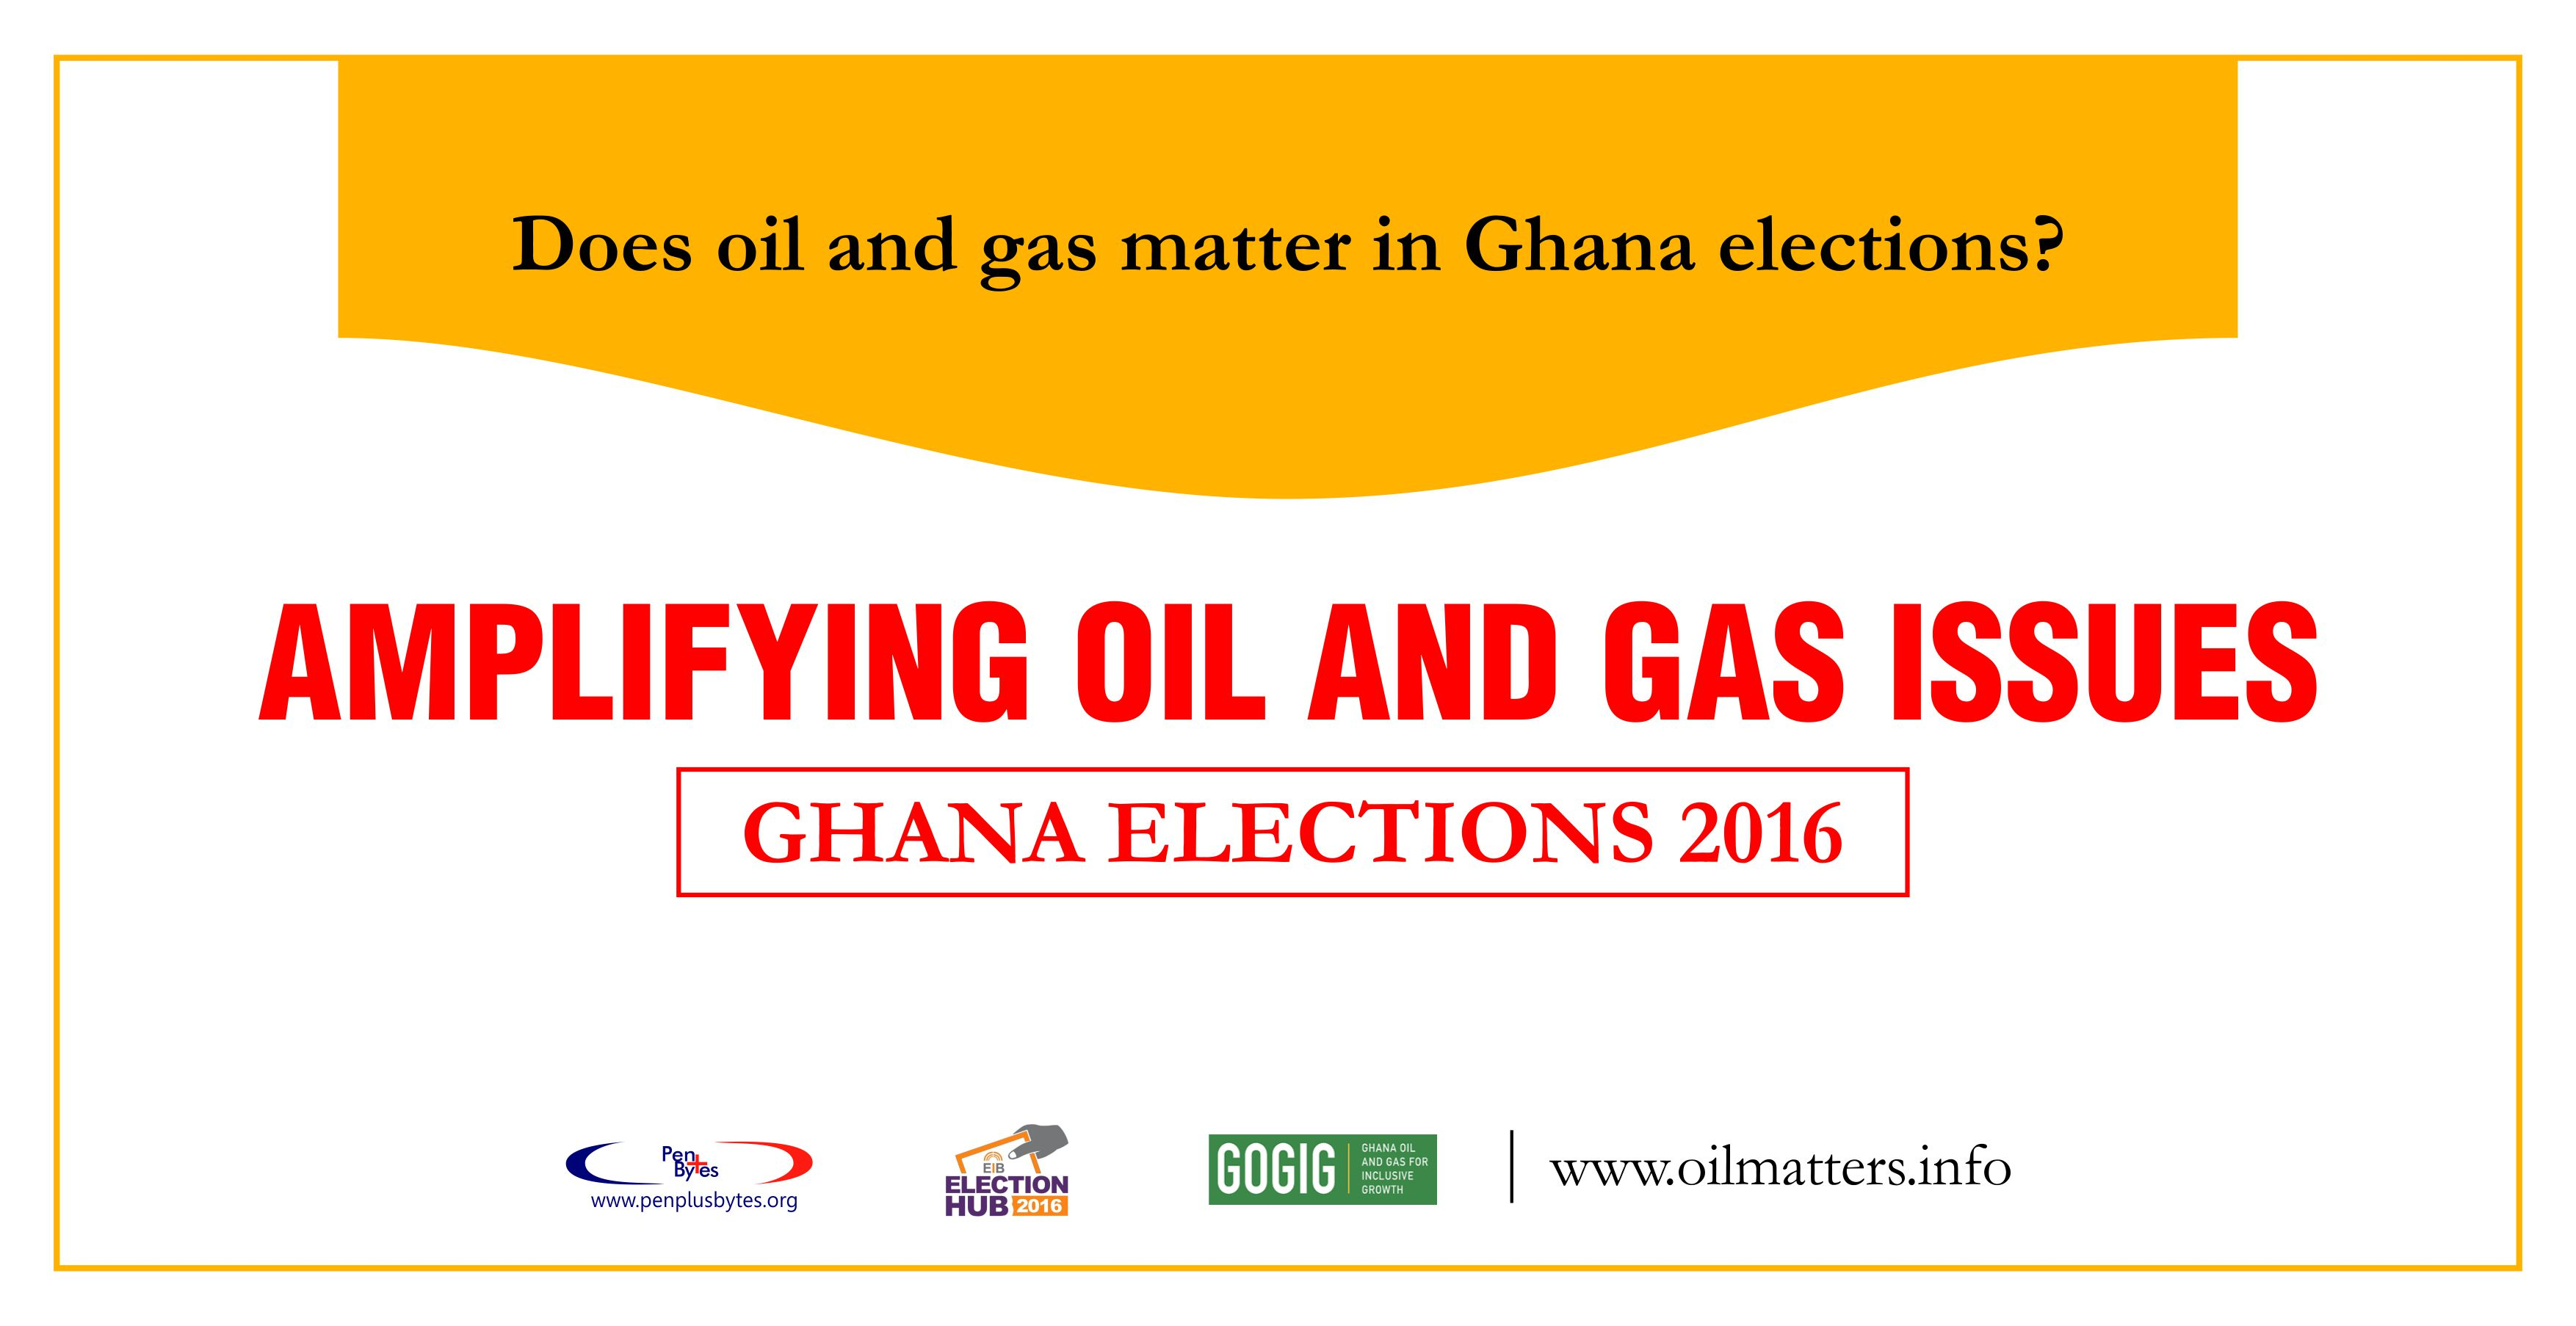 Does Oil and Gas matter in Ghana Elections 2016?